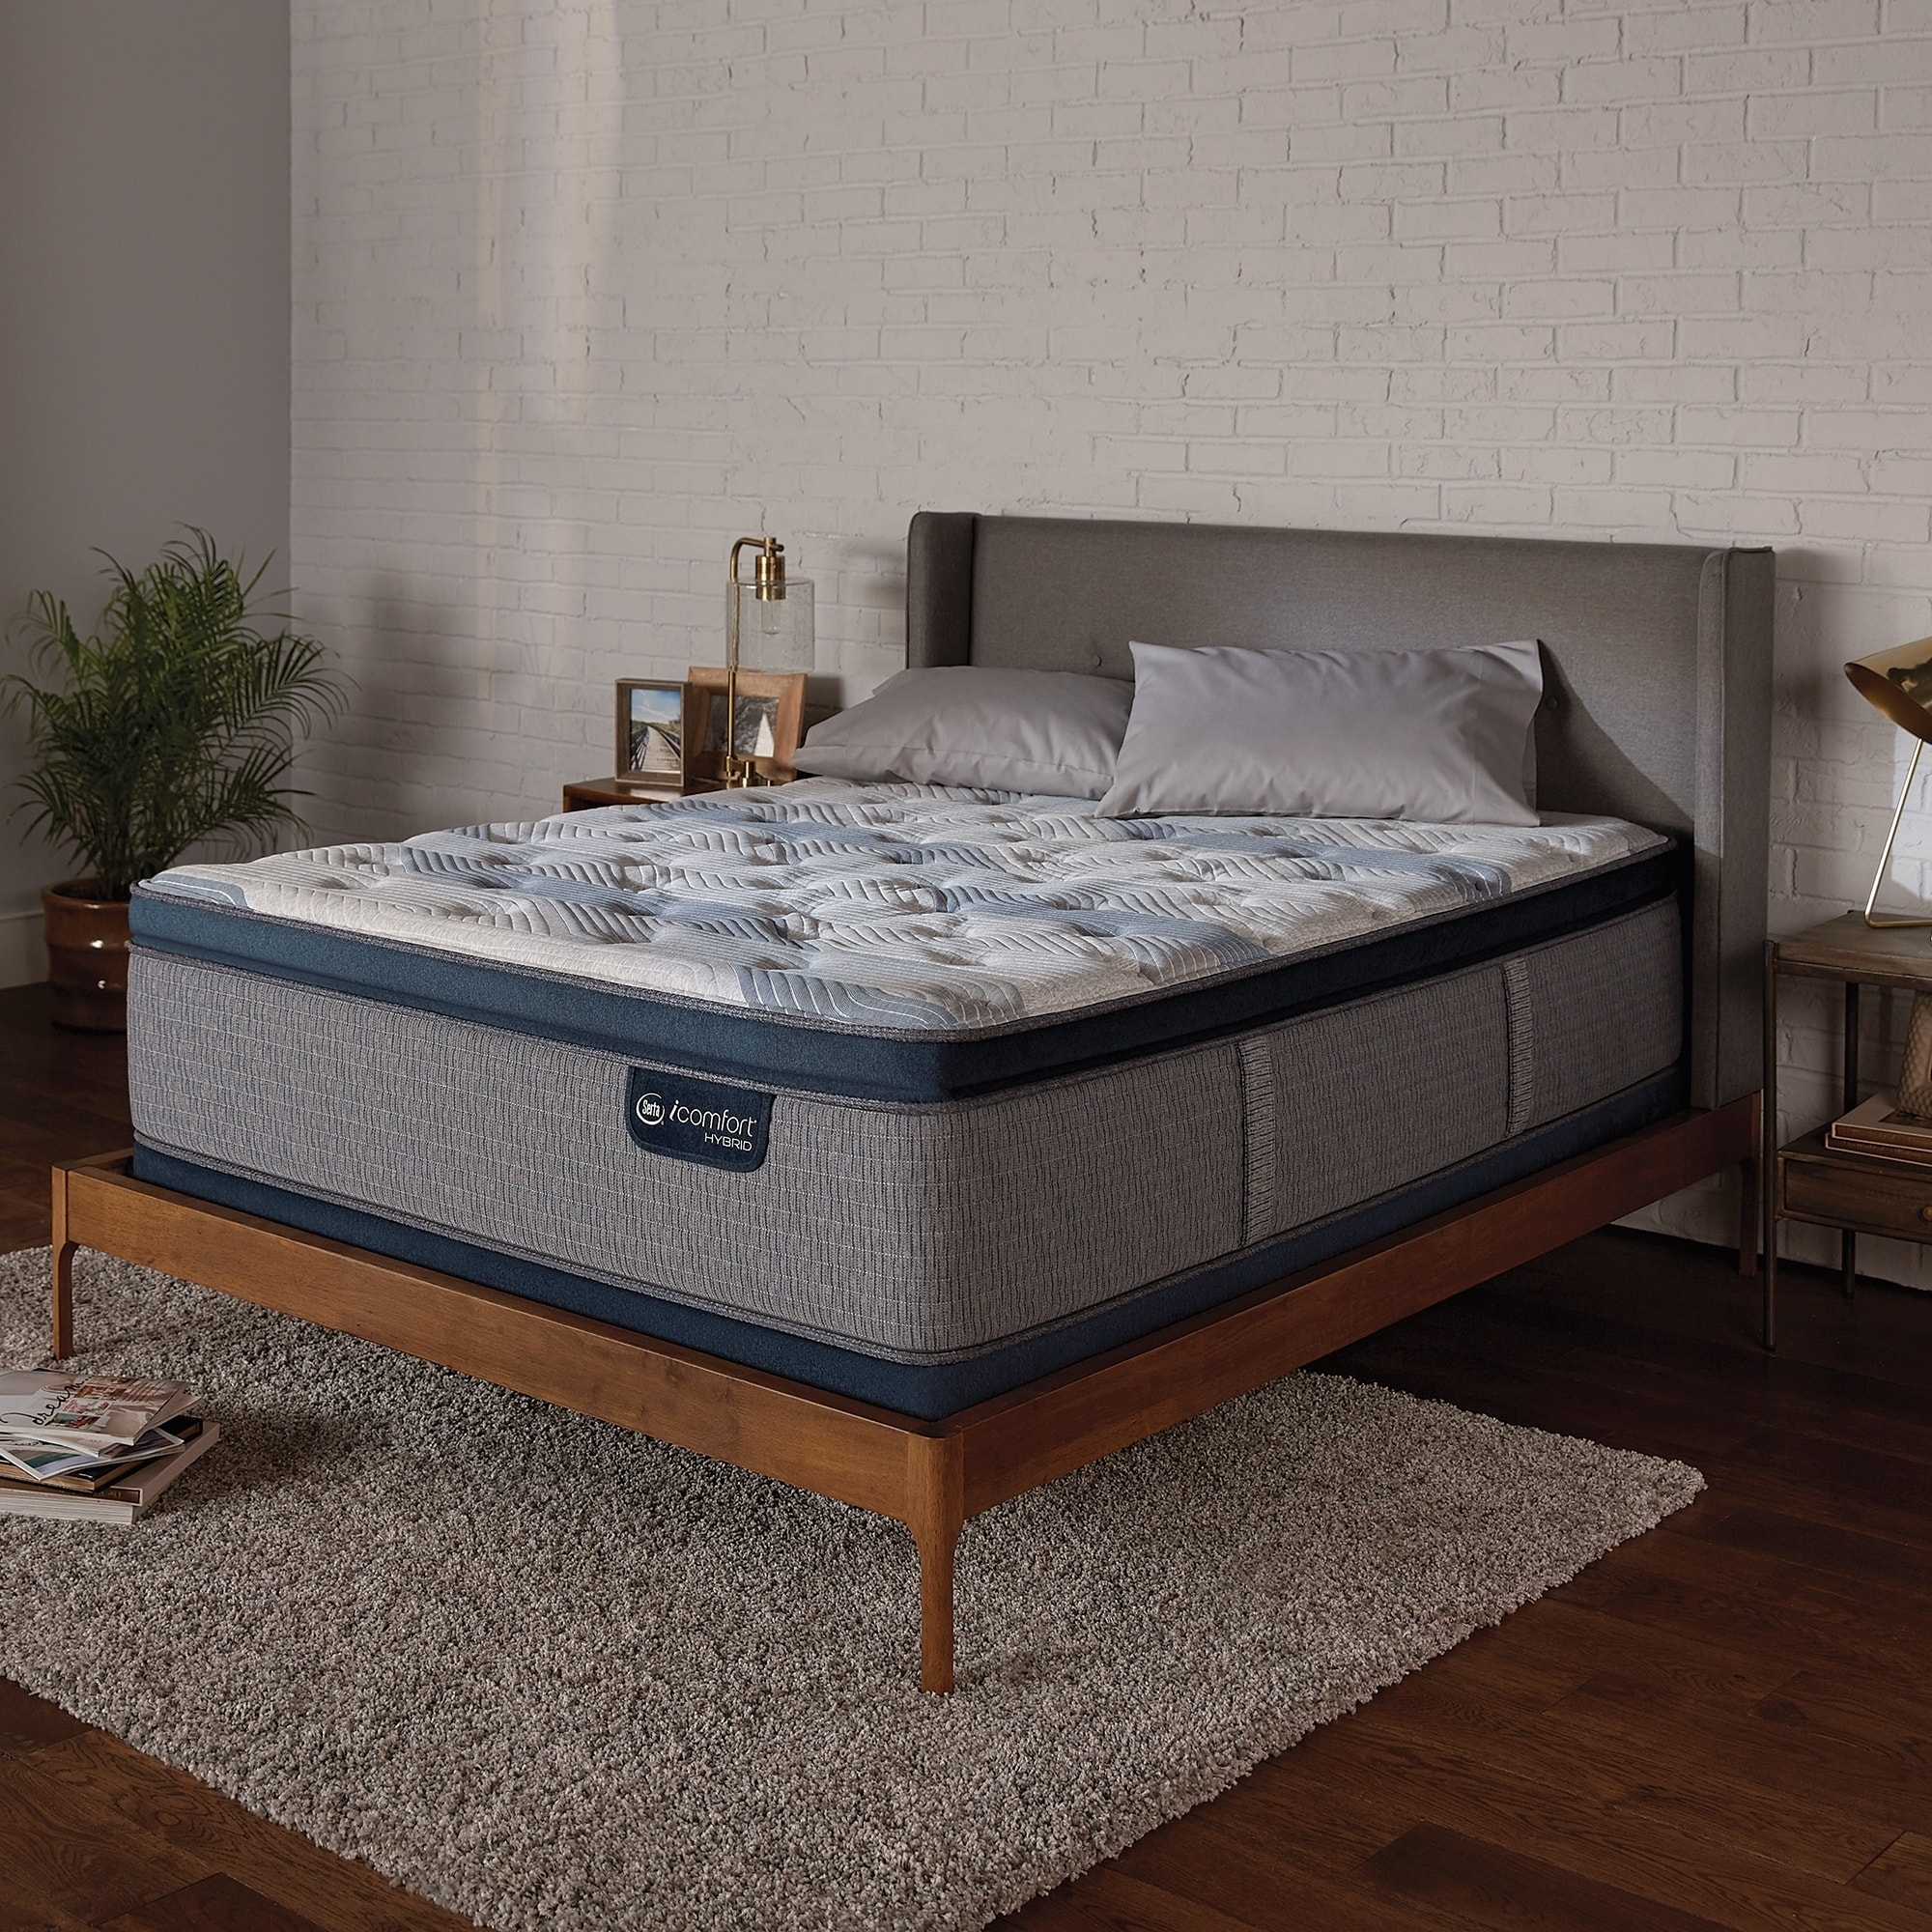 Pillow Top King Mattress Serta Icomfort Hybrid Blue Fusion 300 14 Inch Plush Pillow Top King Size Mattress